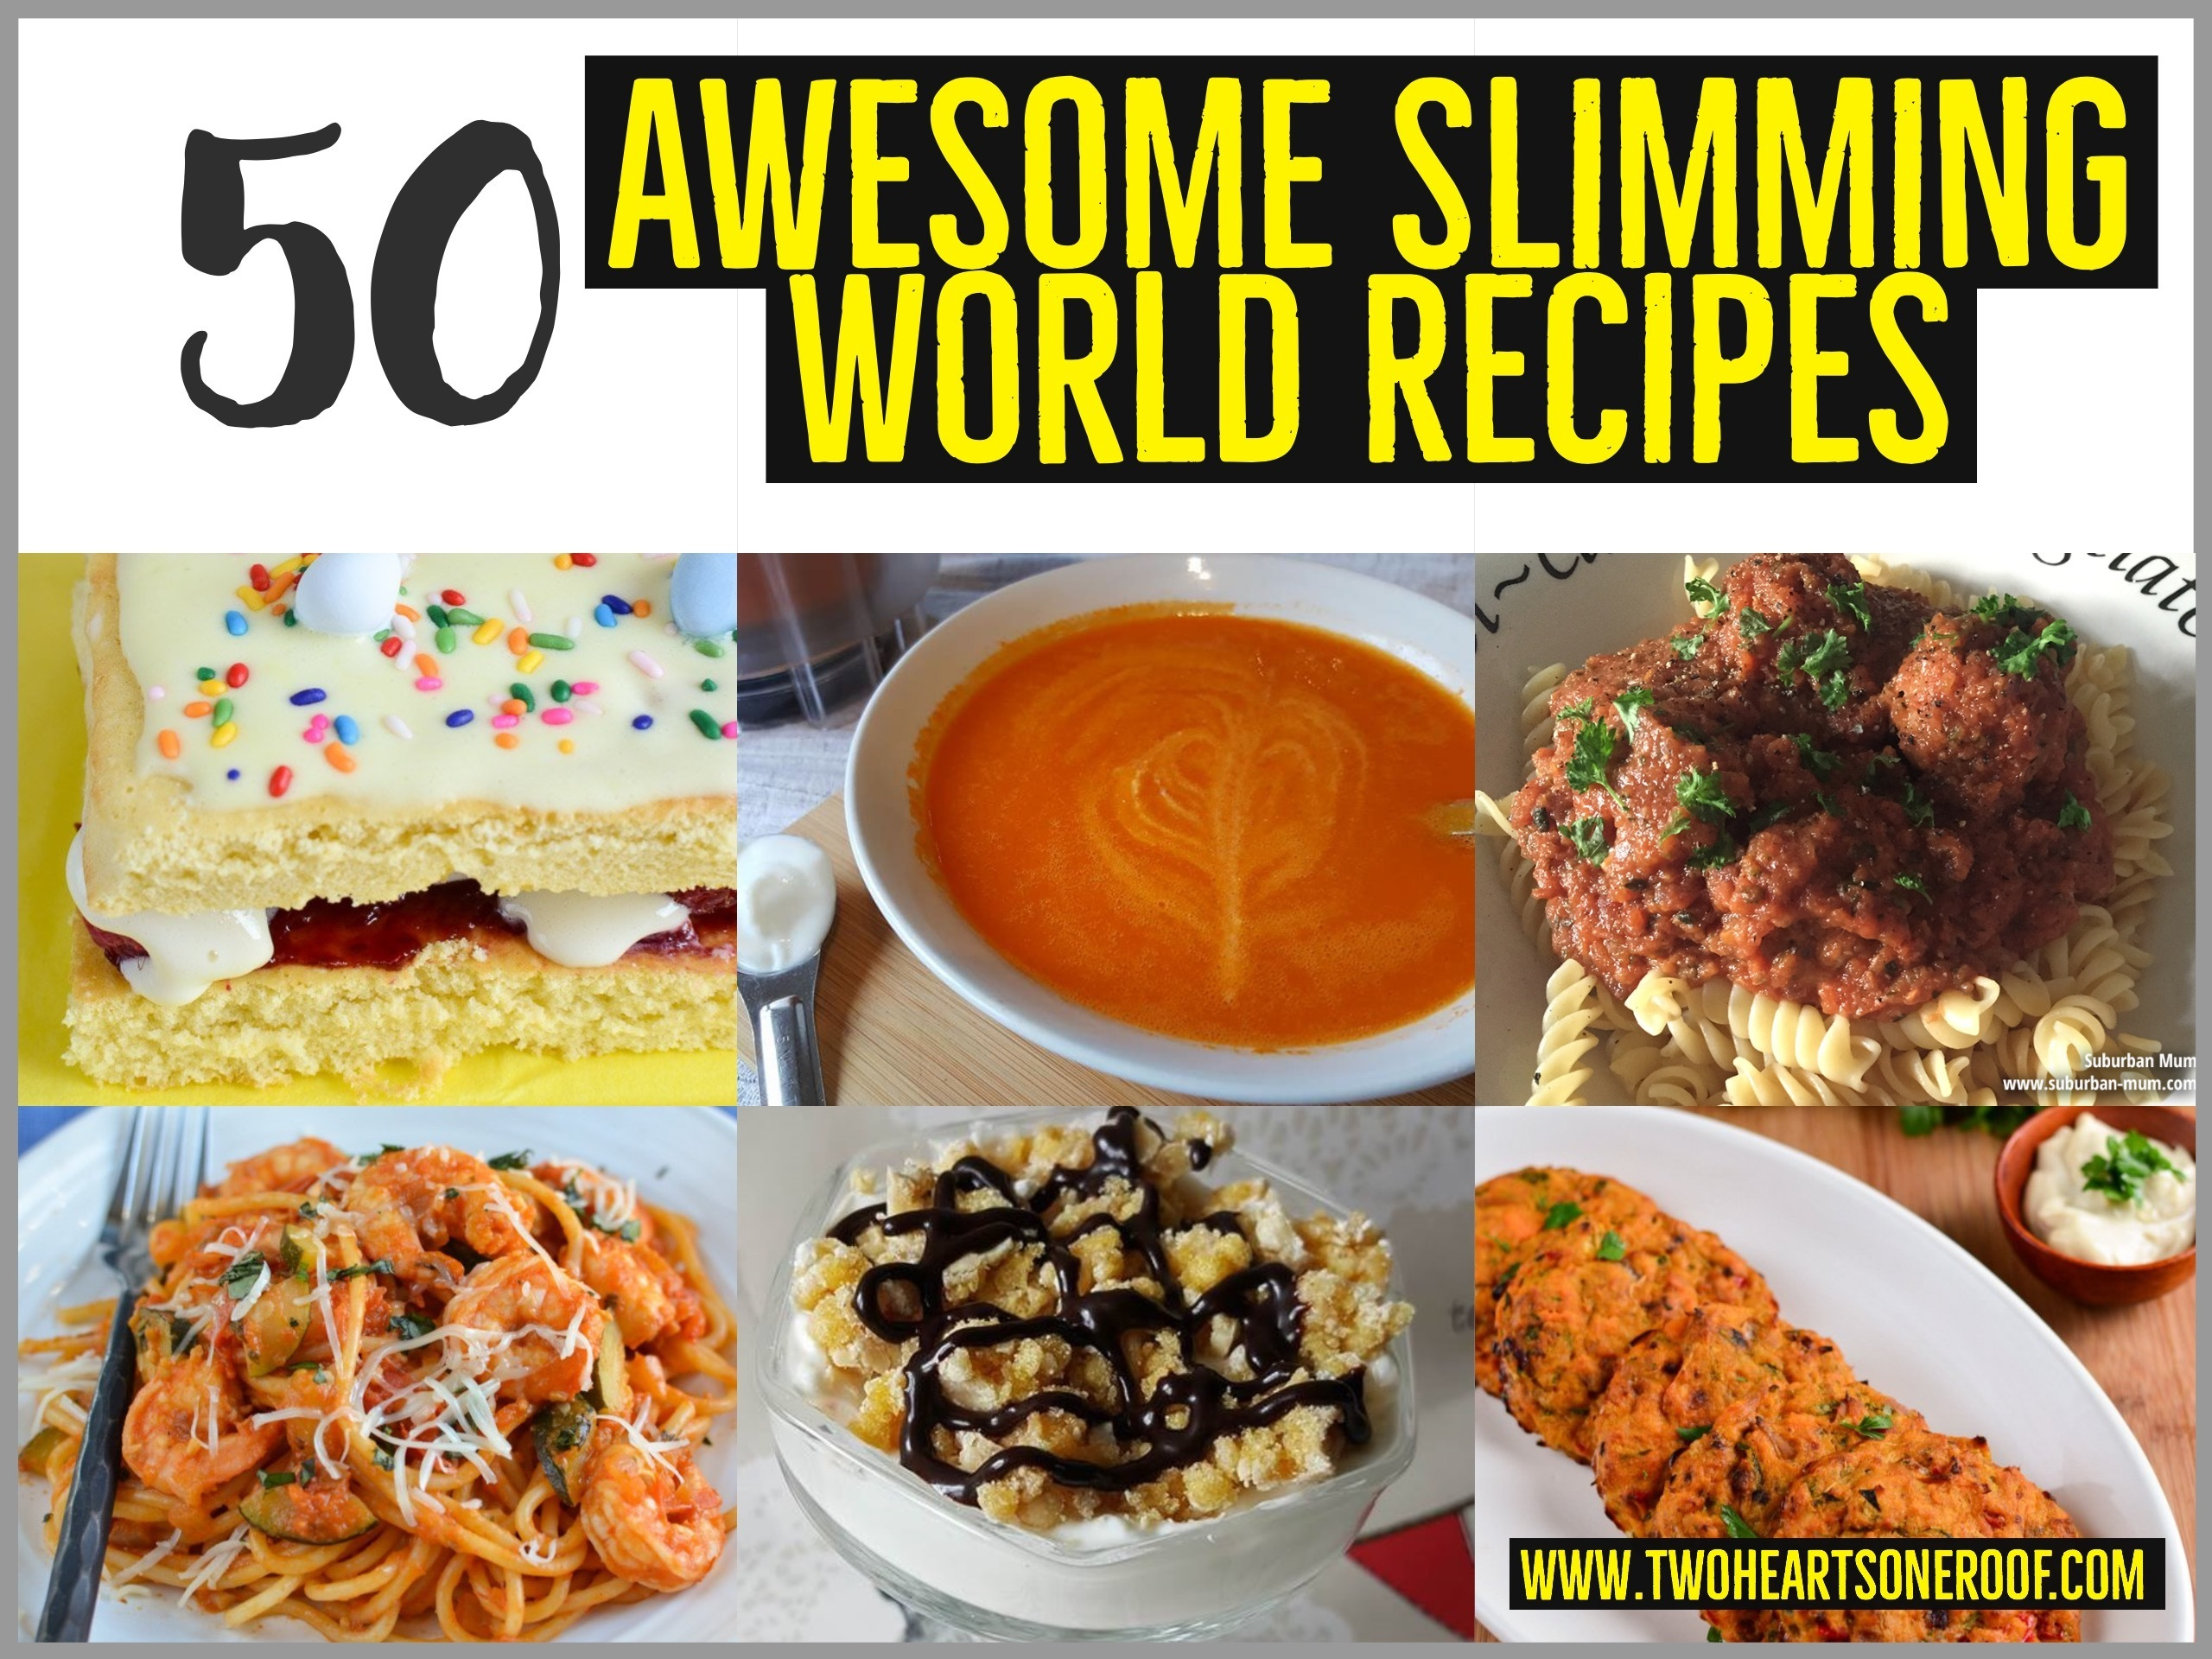 50 Amazing Slimming World Recipes To Keep You On Plan!